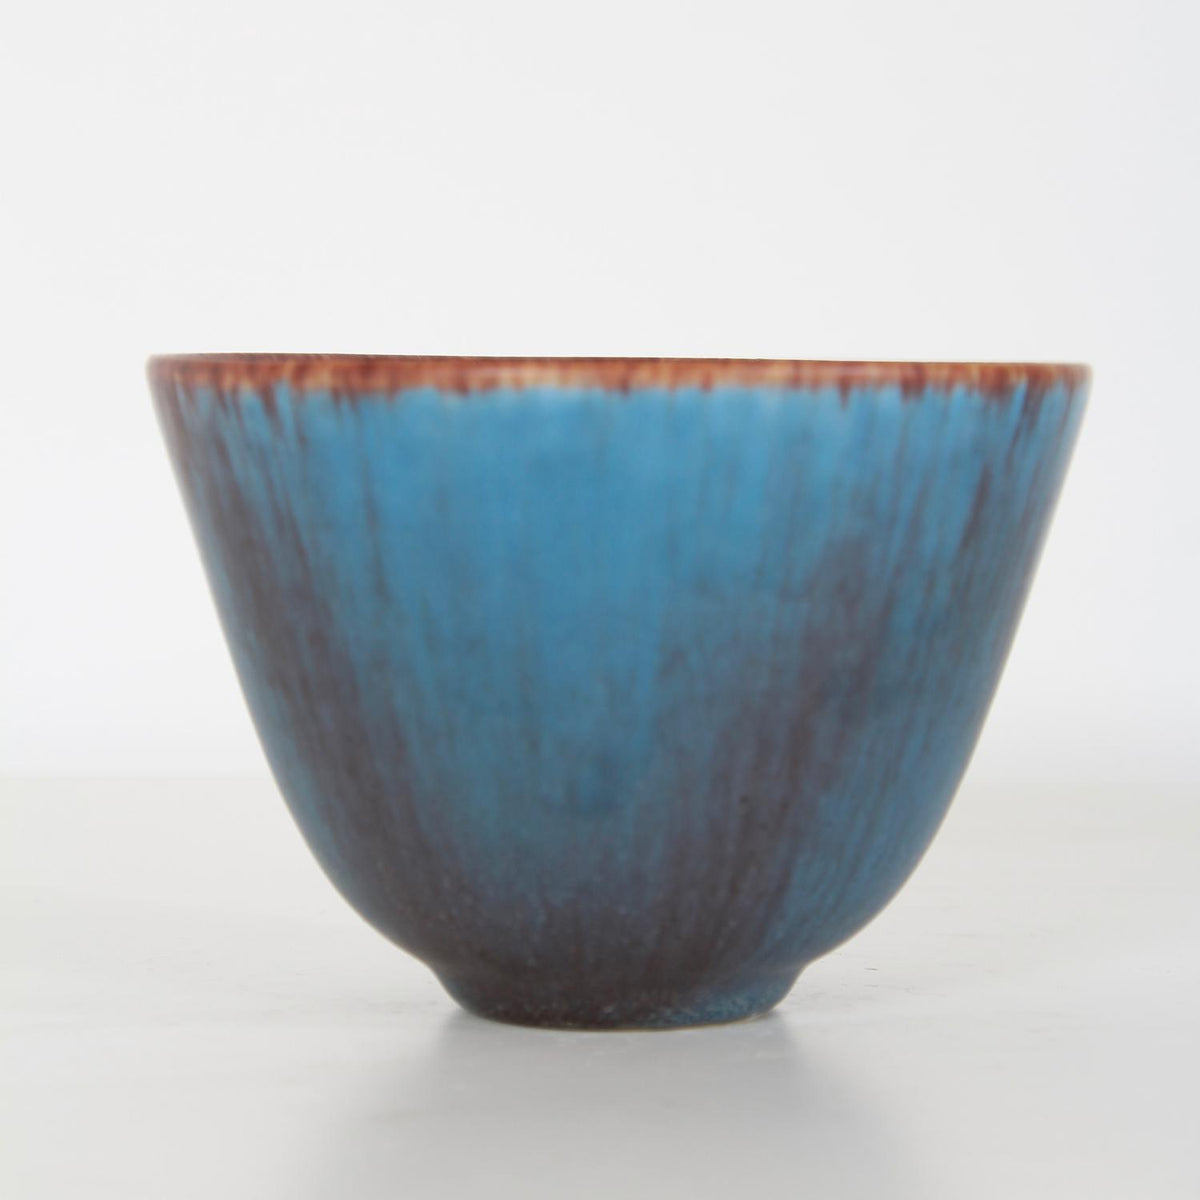 Swedish Designer Gunnar Nylund  Ceramic Powder Blue Bowl